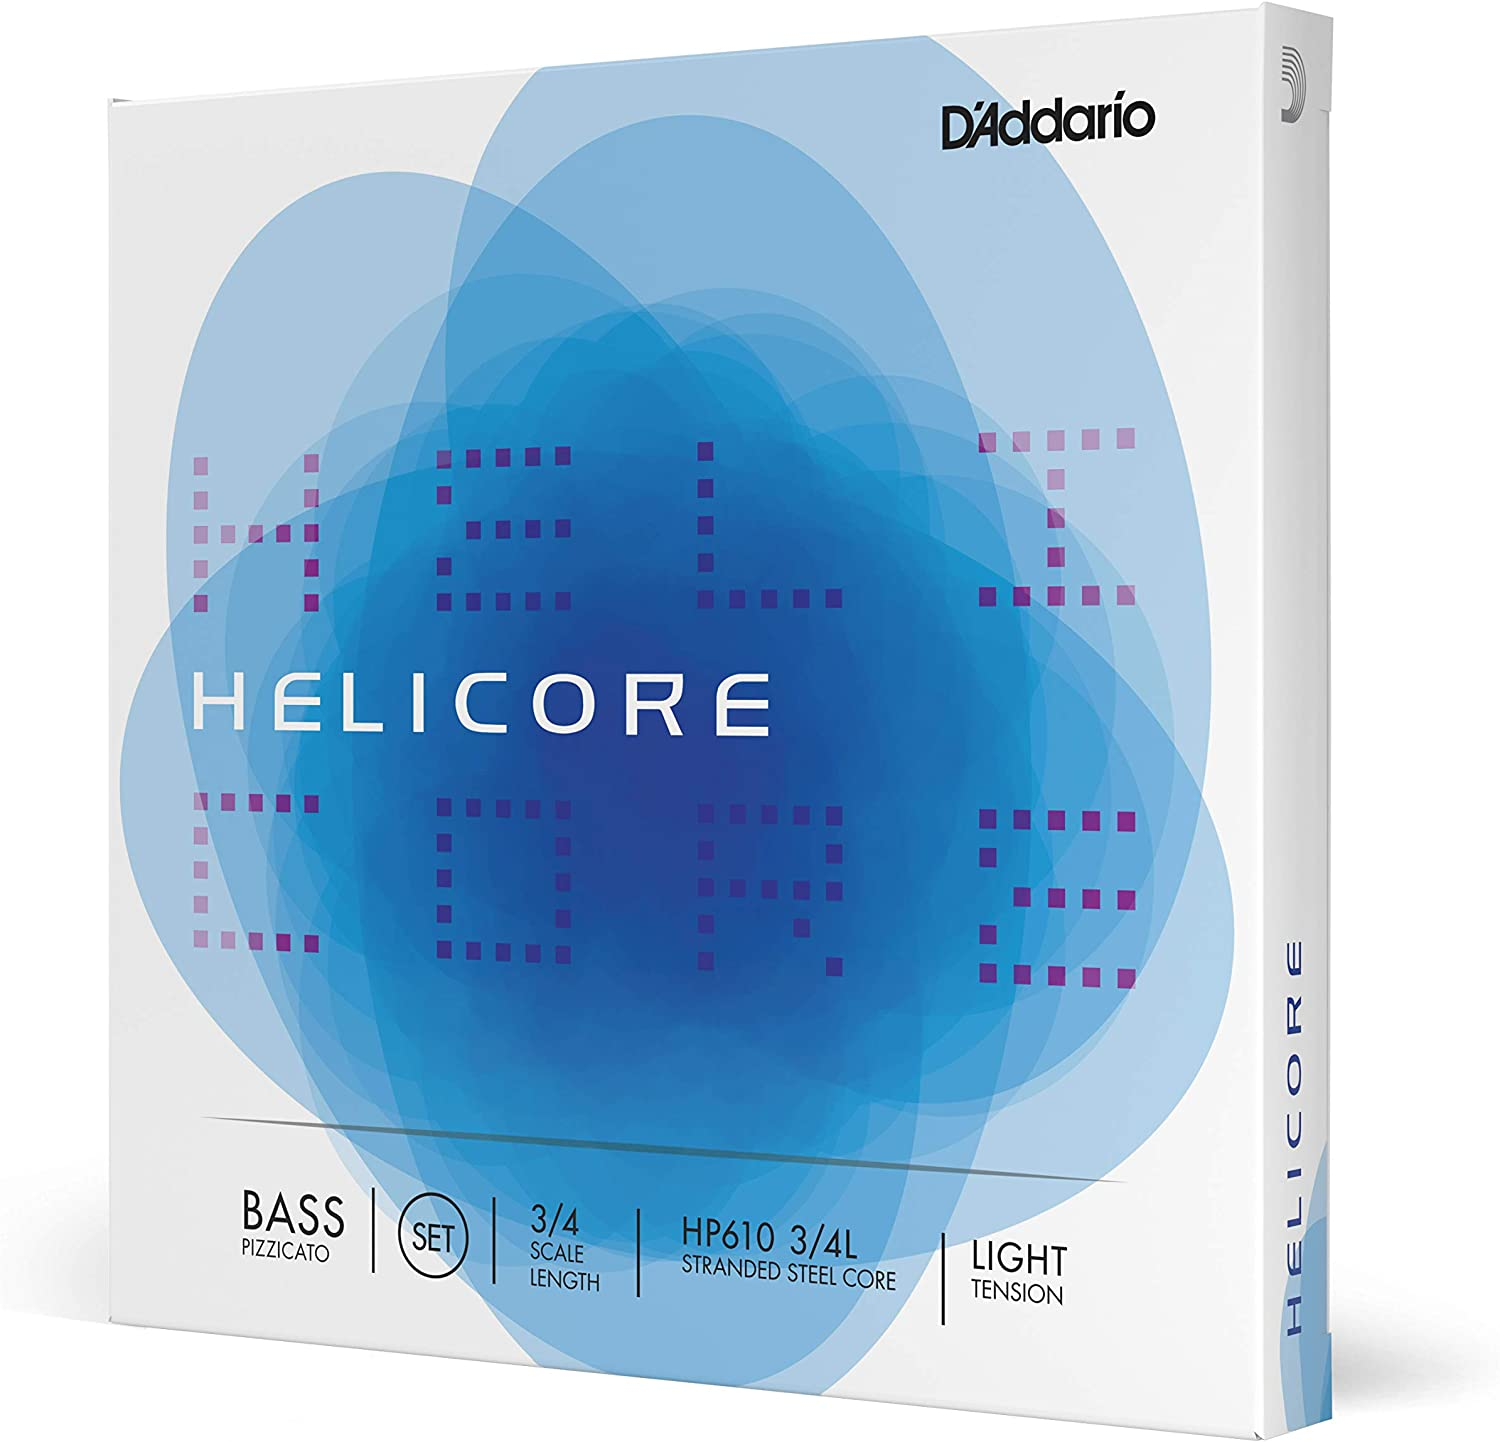 D'Addario Helicore Pizzicato Bass String Set Light 3 T 4 Scale New product Max 77% OFF type